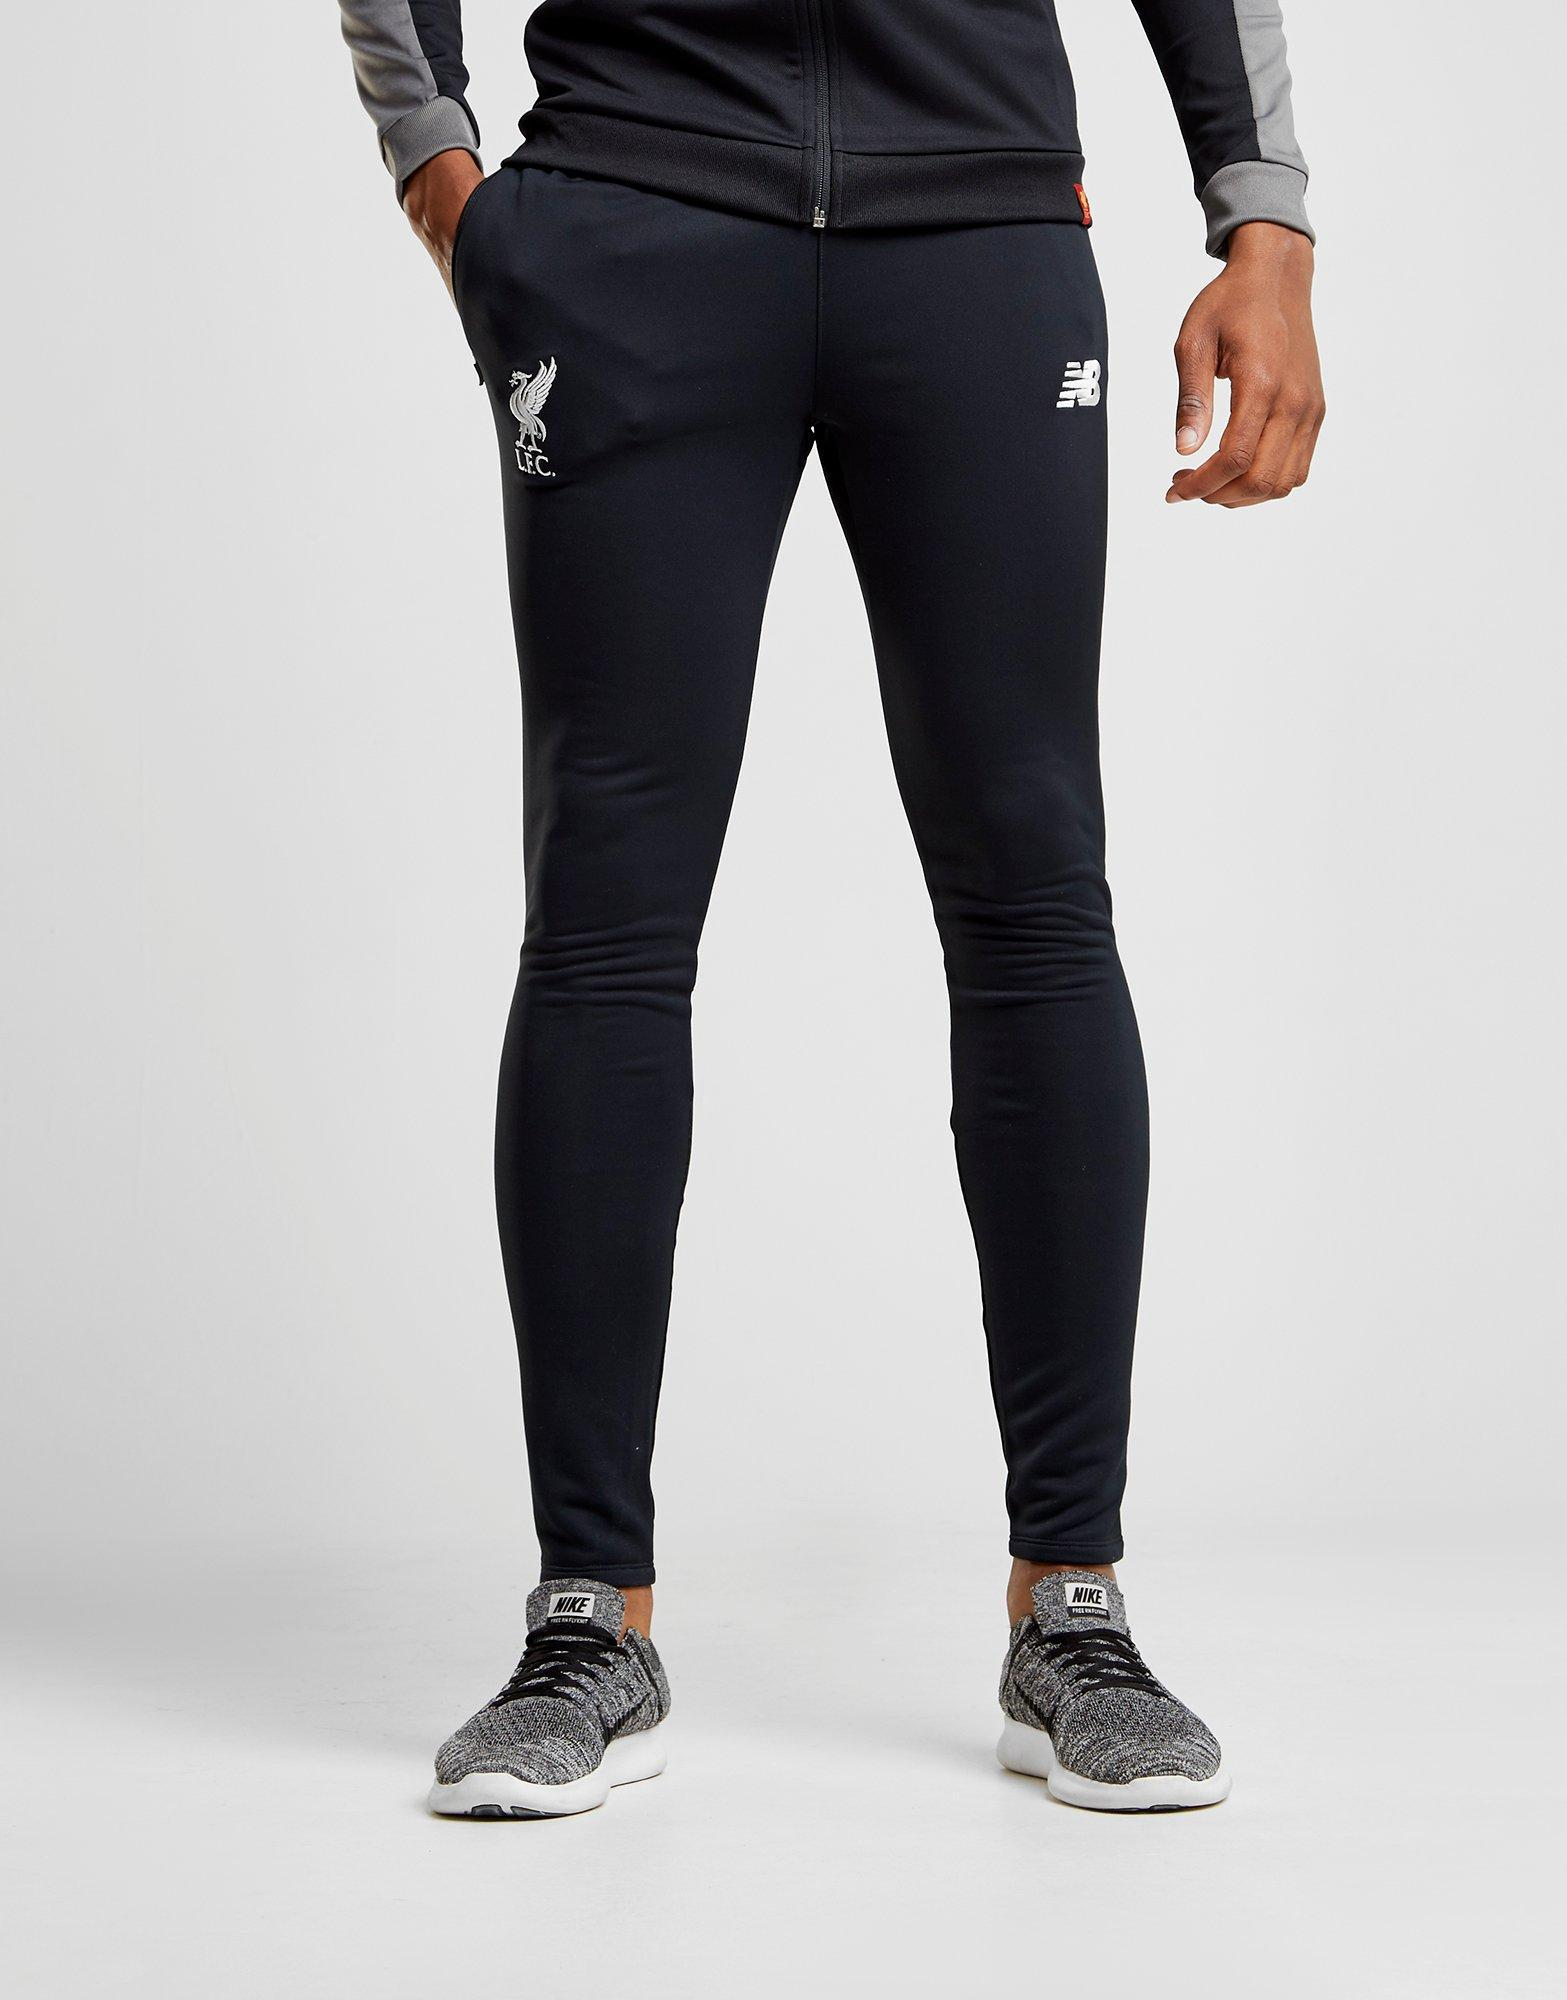 New Balance Synthetic Liverpool Fc Tech Pants In Black White Black For Men Lyst